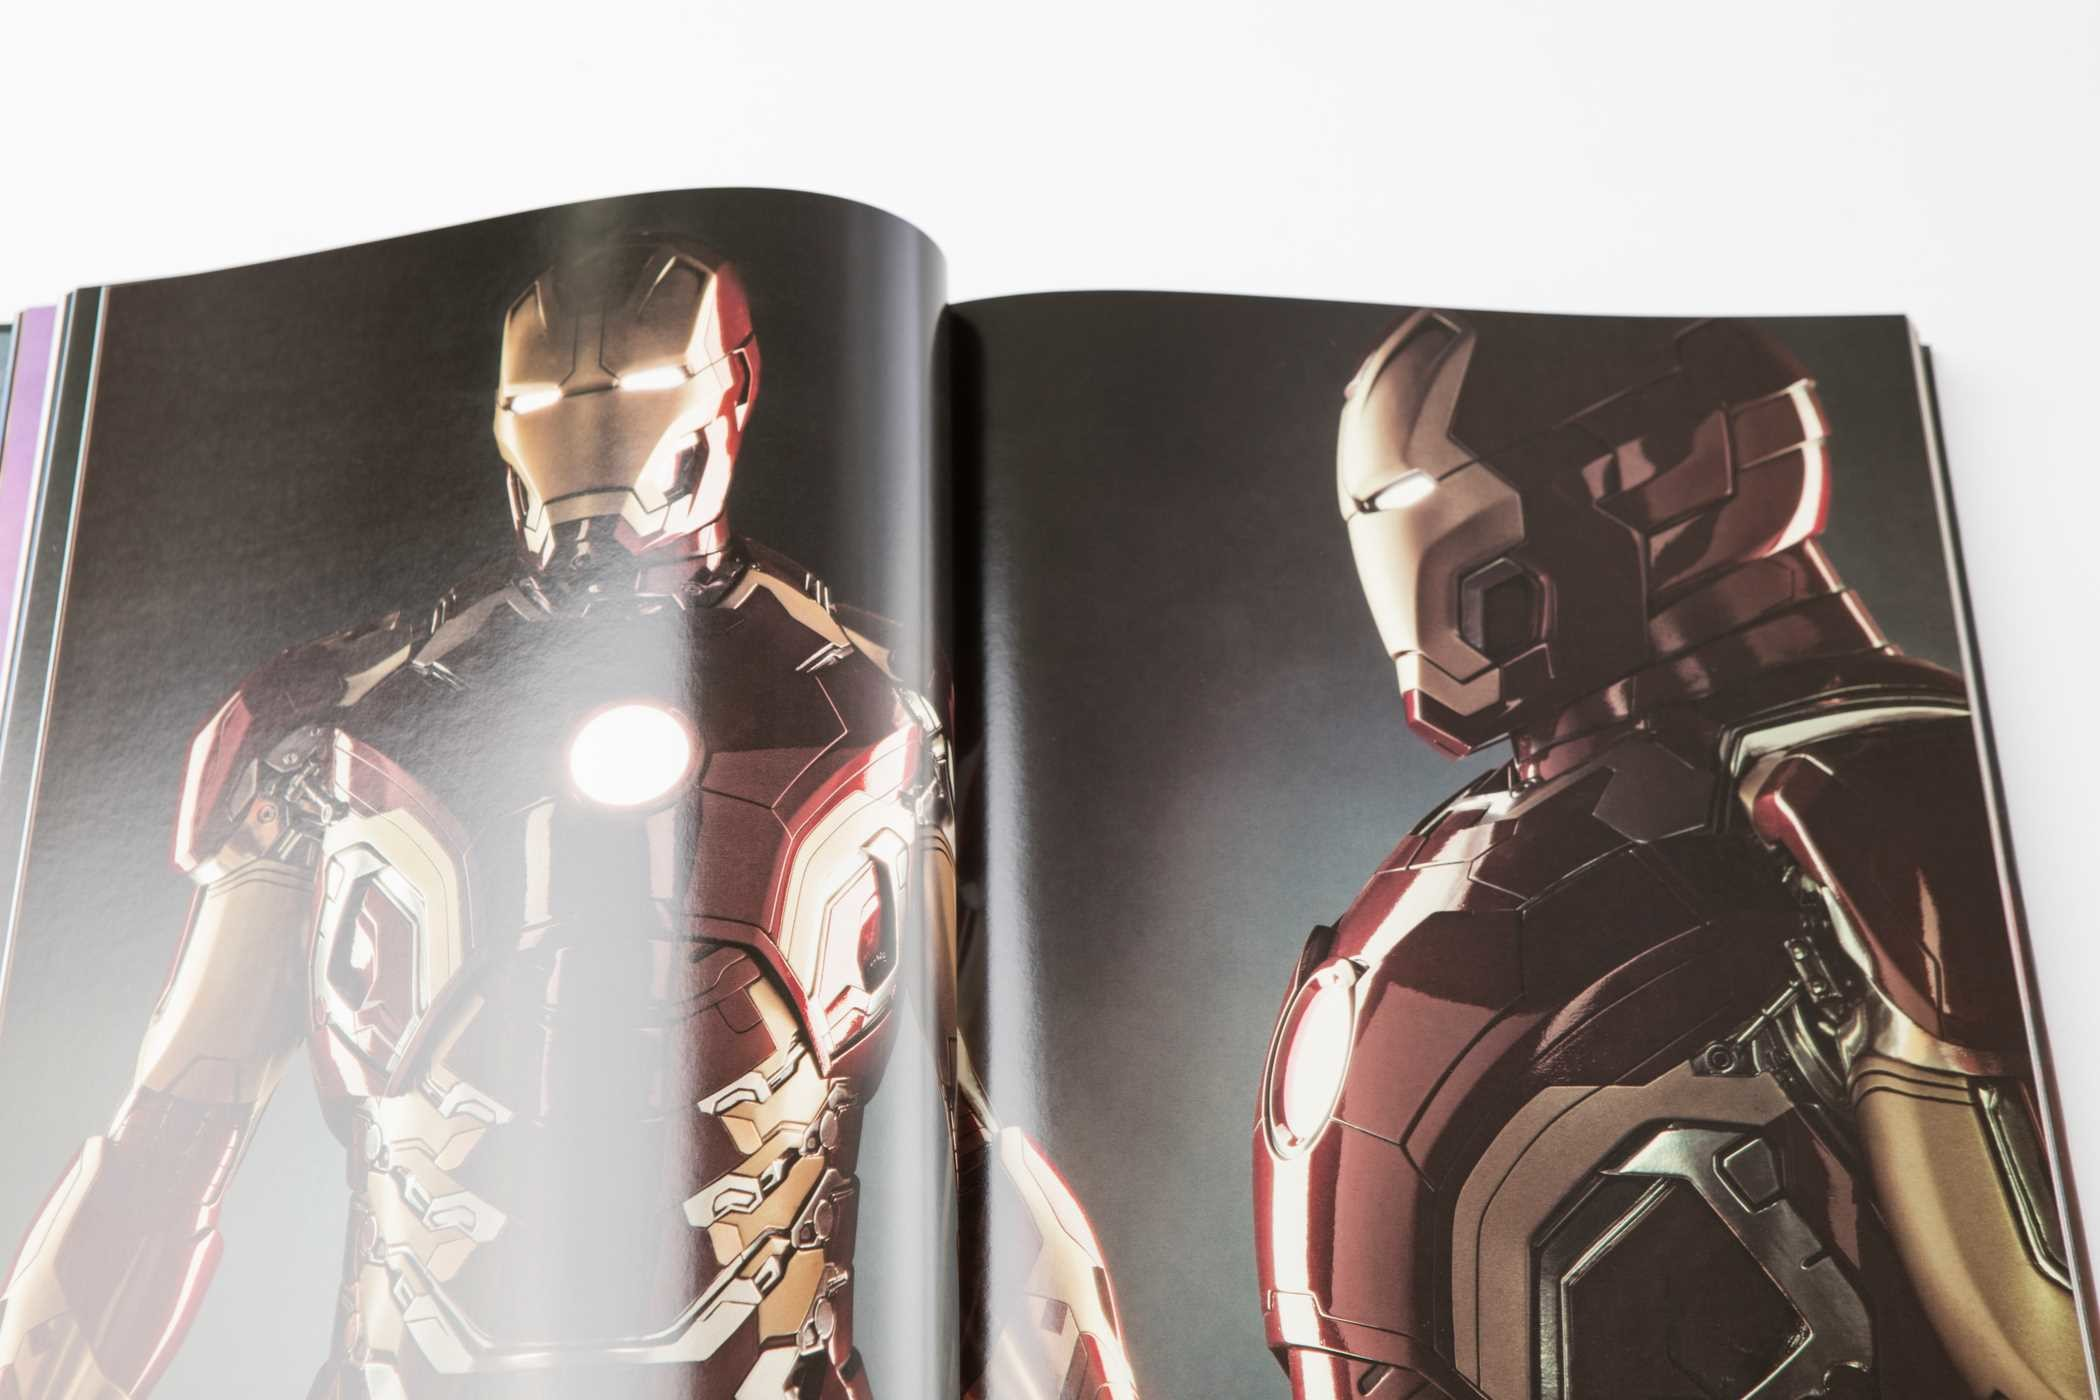 Volume 2 Sideshow Collect Sideshow Collectibles Presents Capturing Archetypes